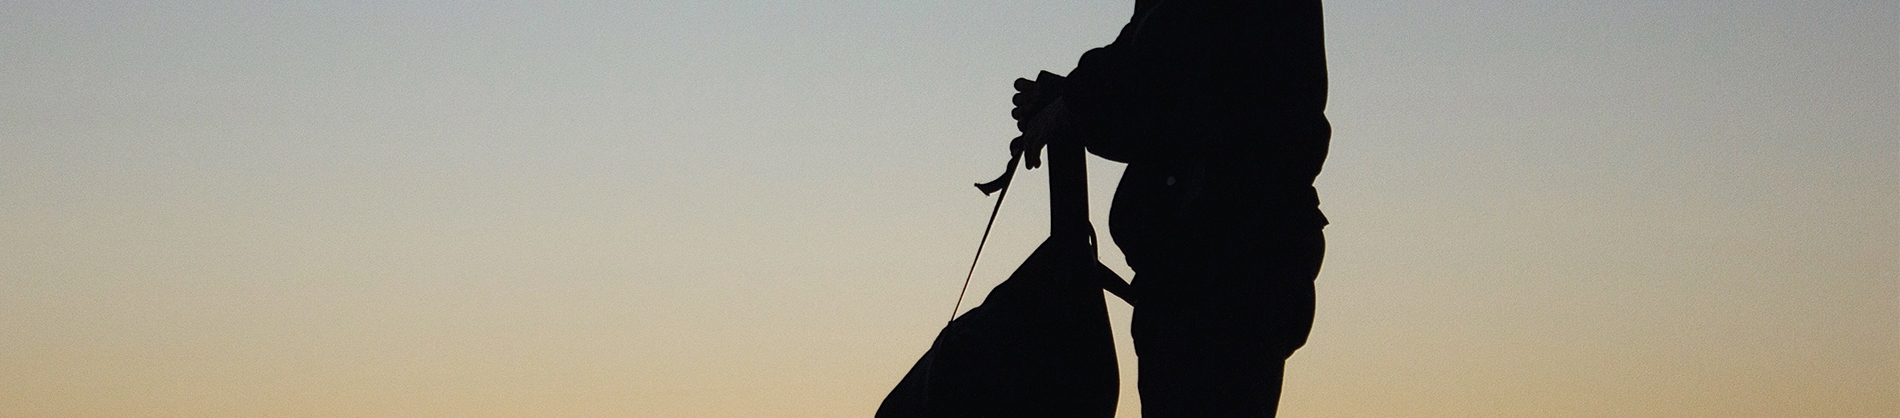 A silhouette of a man holding a backpack